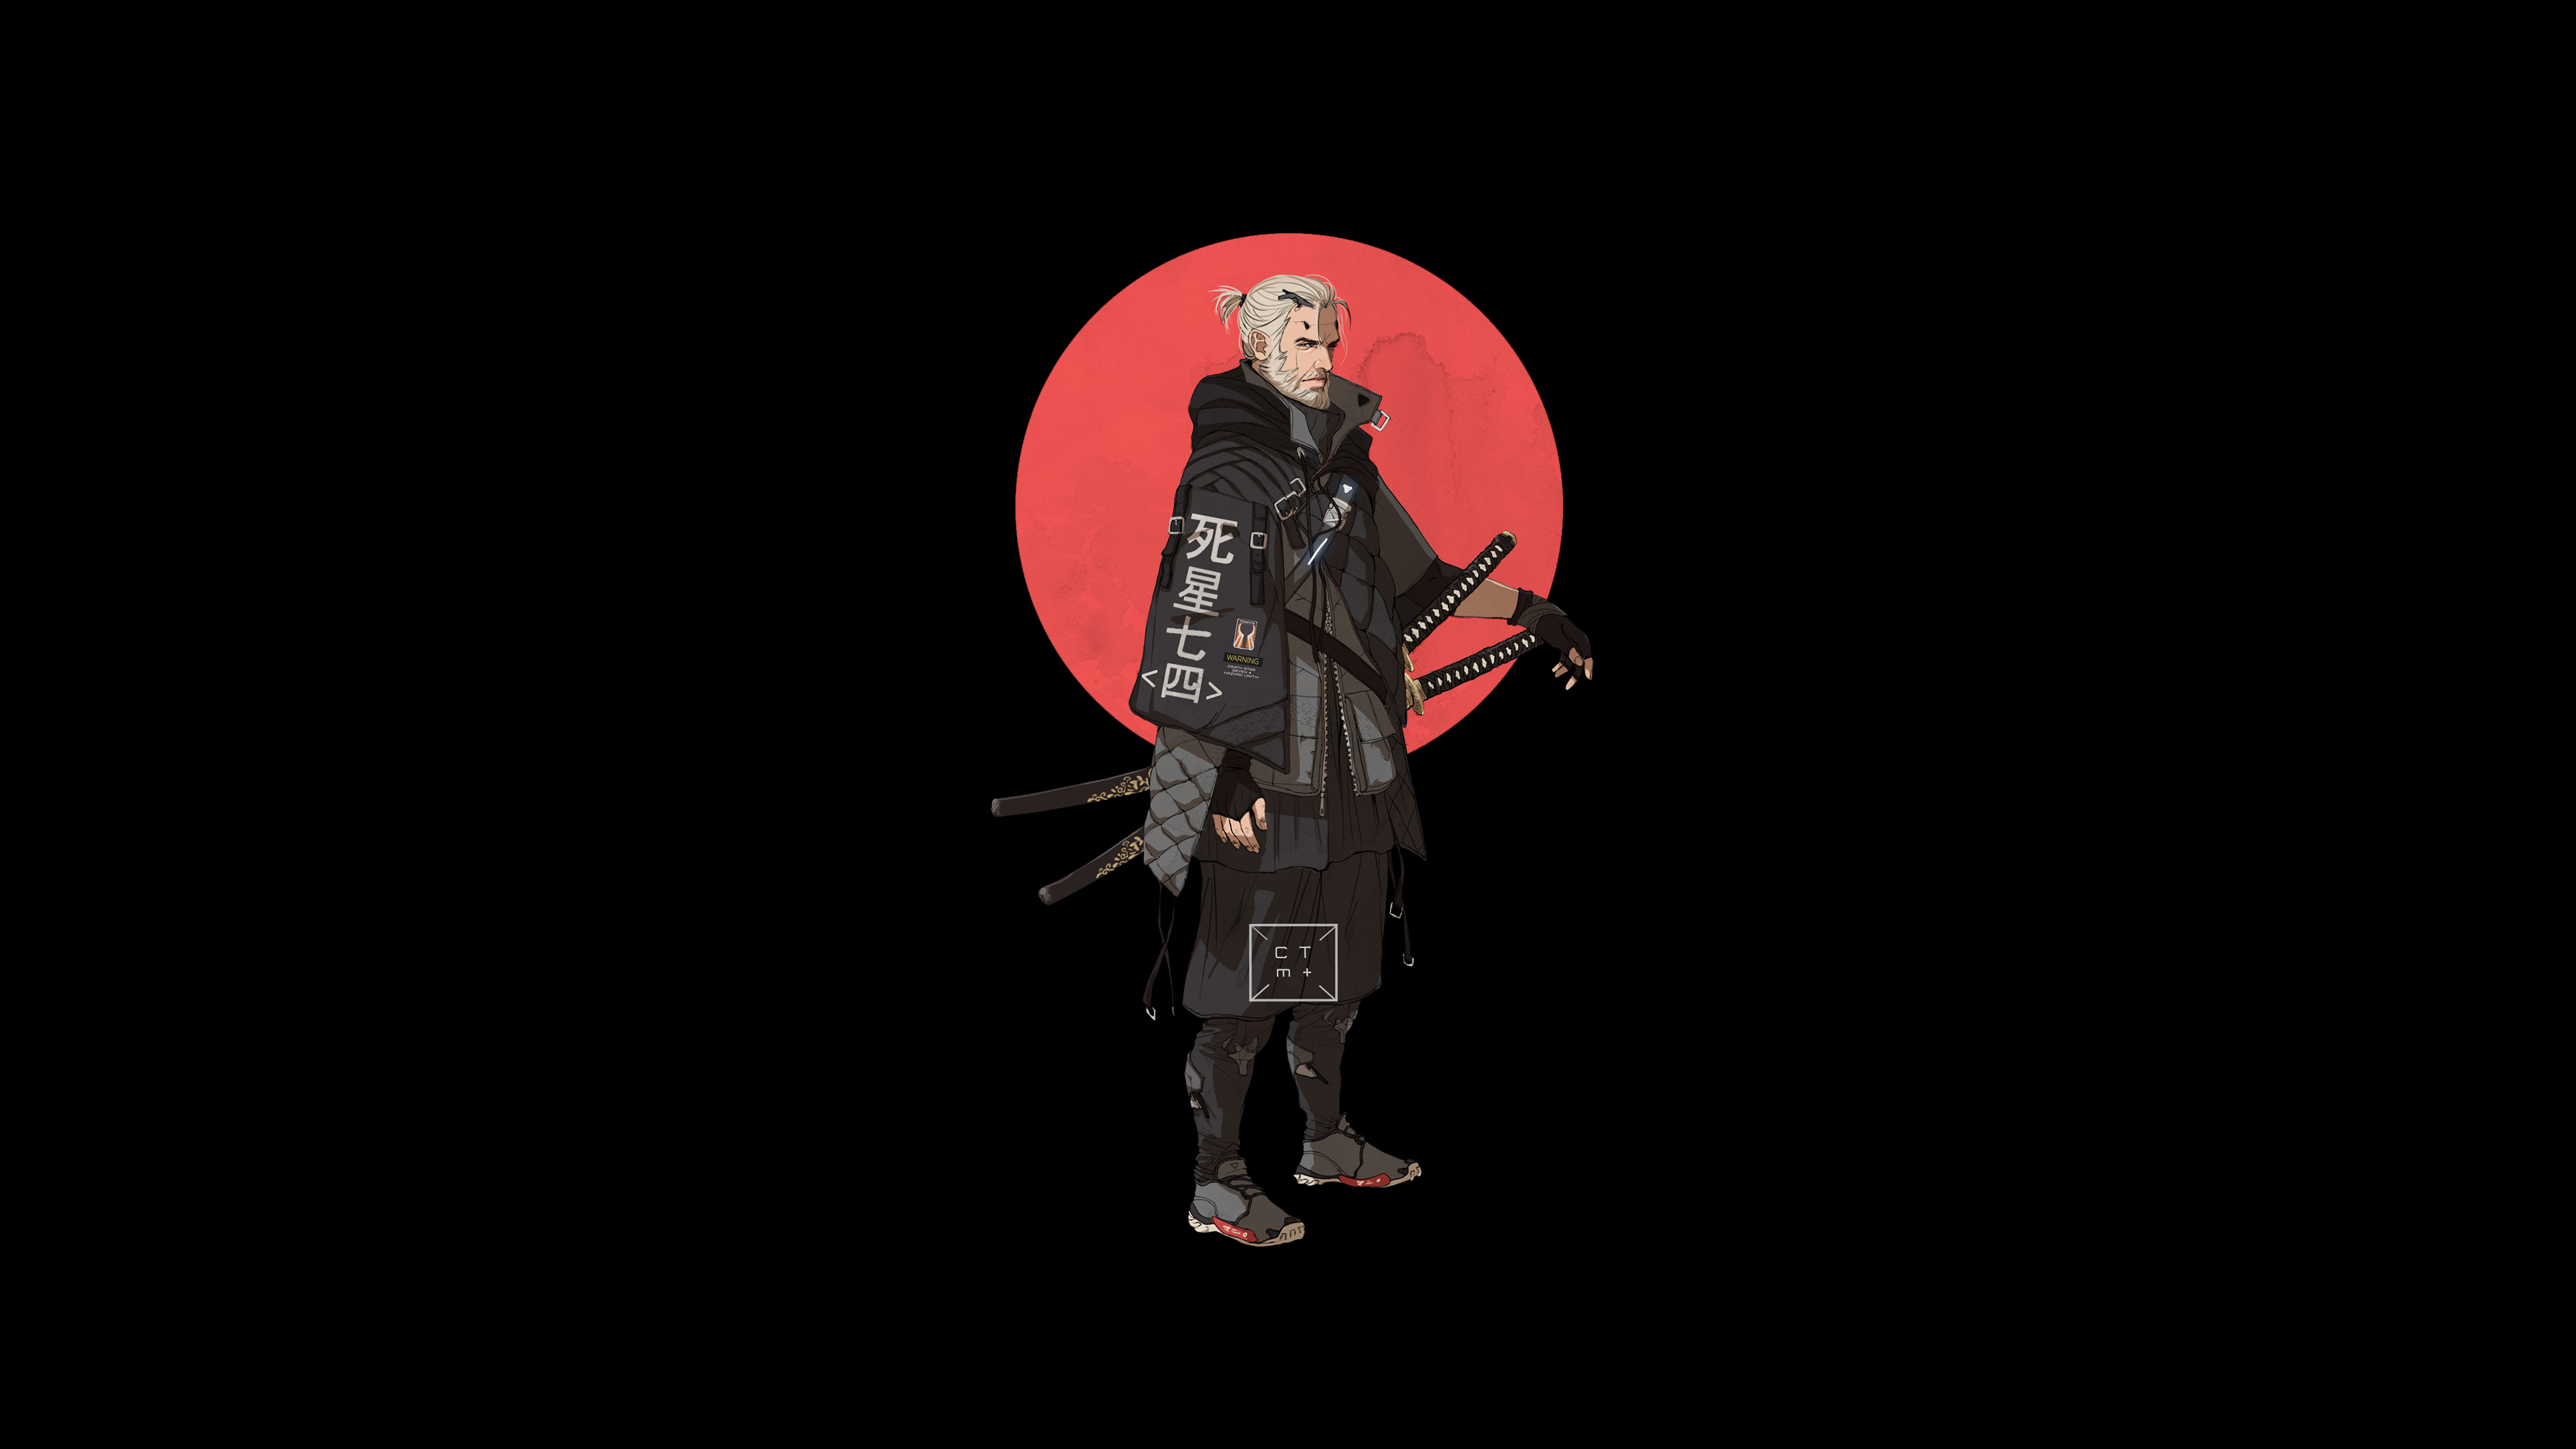 Geralt wallpaper Japanese characters, Wallpaper, The witcher